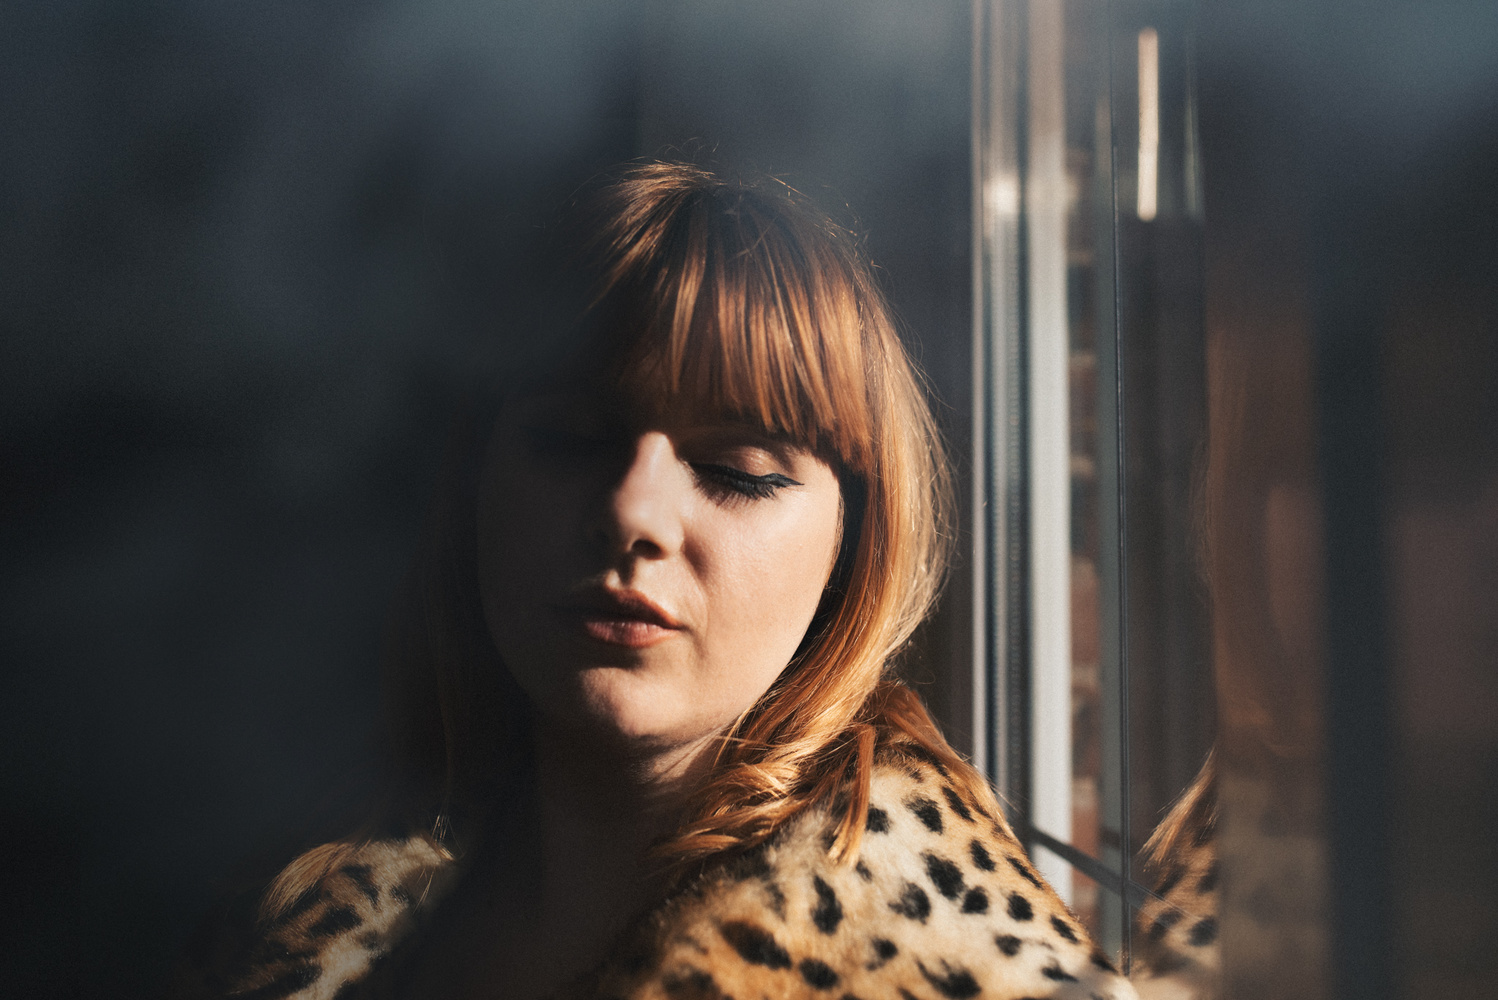 A ginger woman in a leopard print coat.